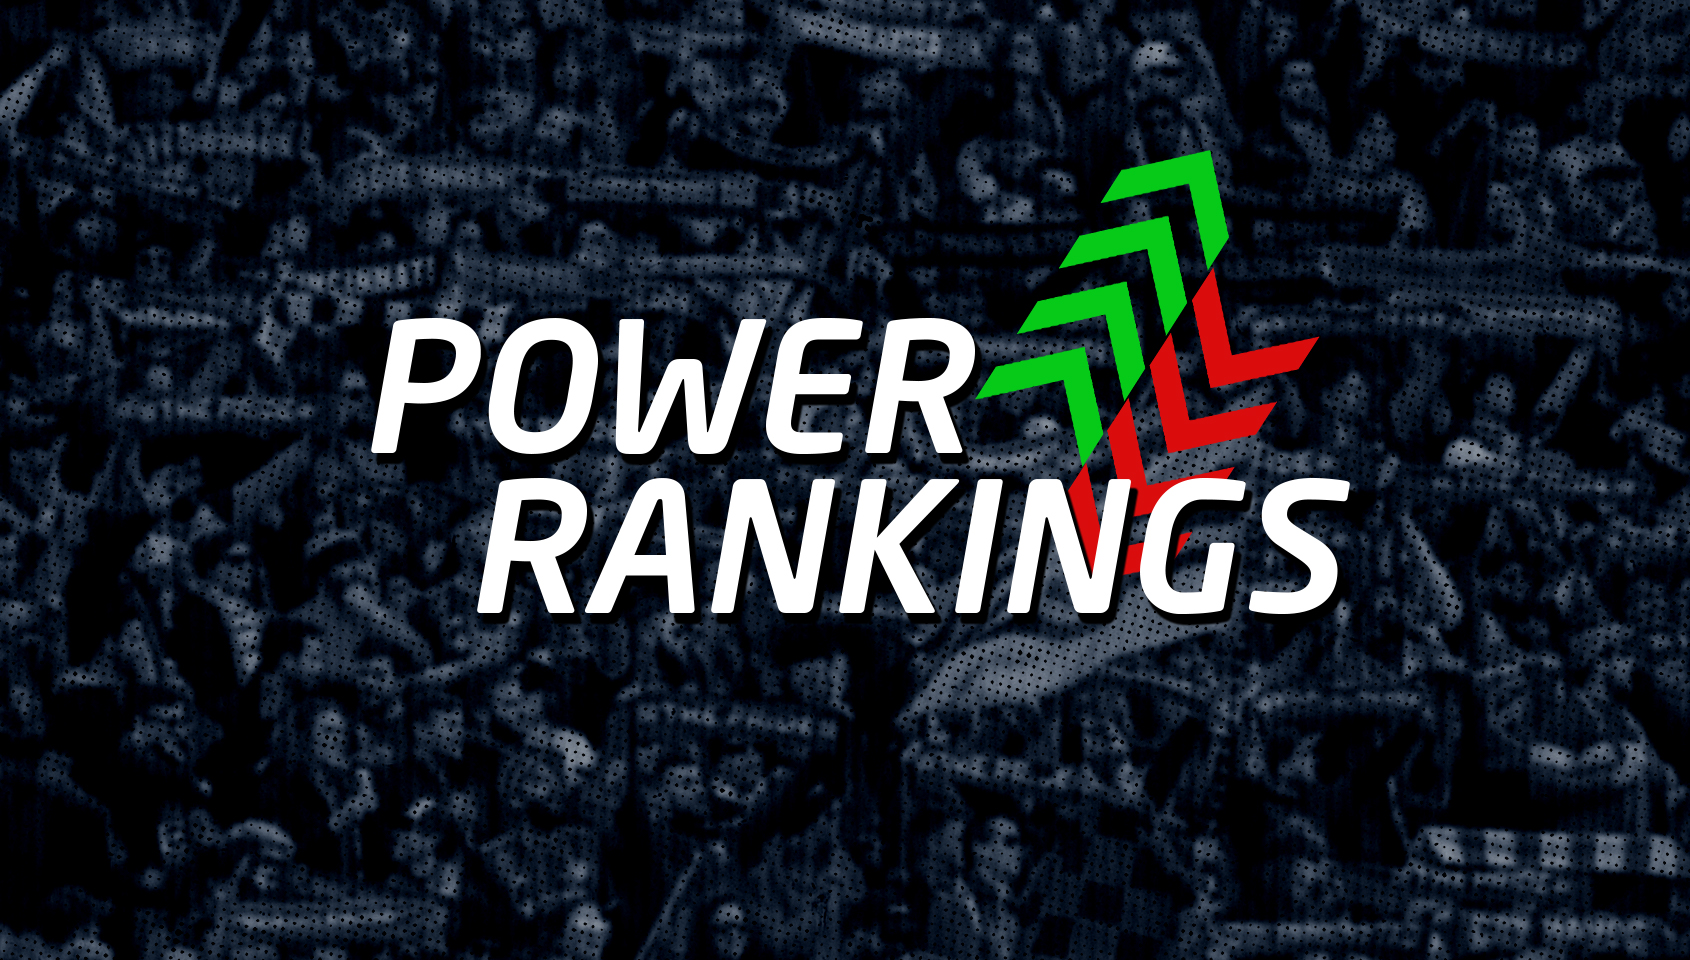 MLS Week 24 Power Rankings: LAFC's roll continues, Atlanta United shines